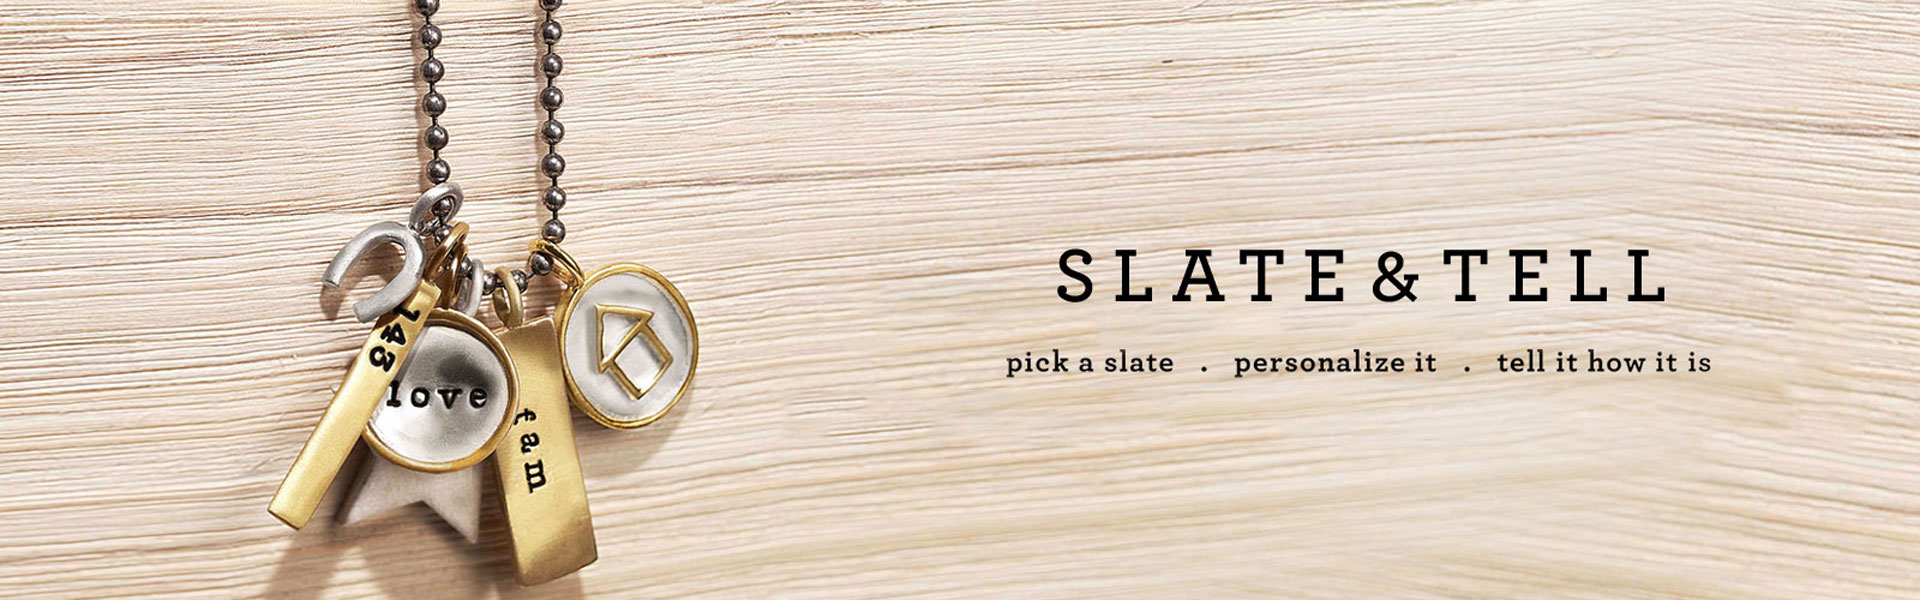 Slate and Tell